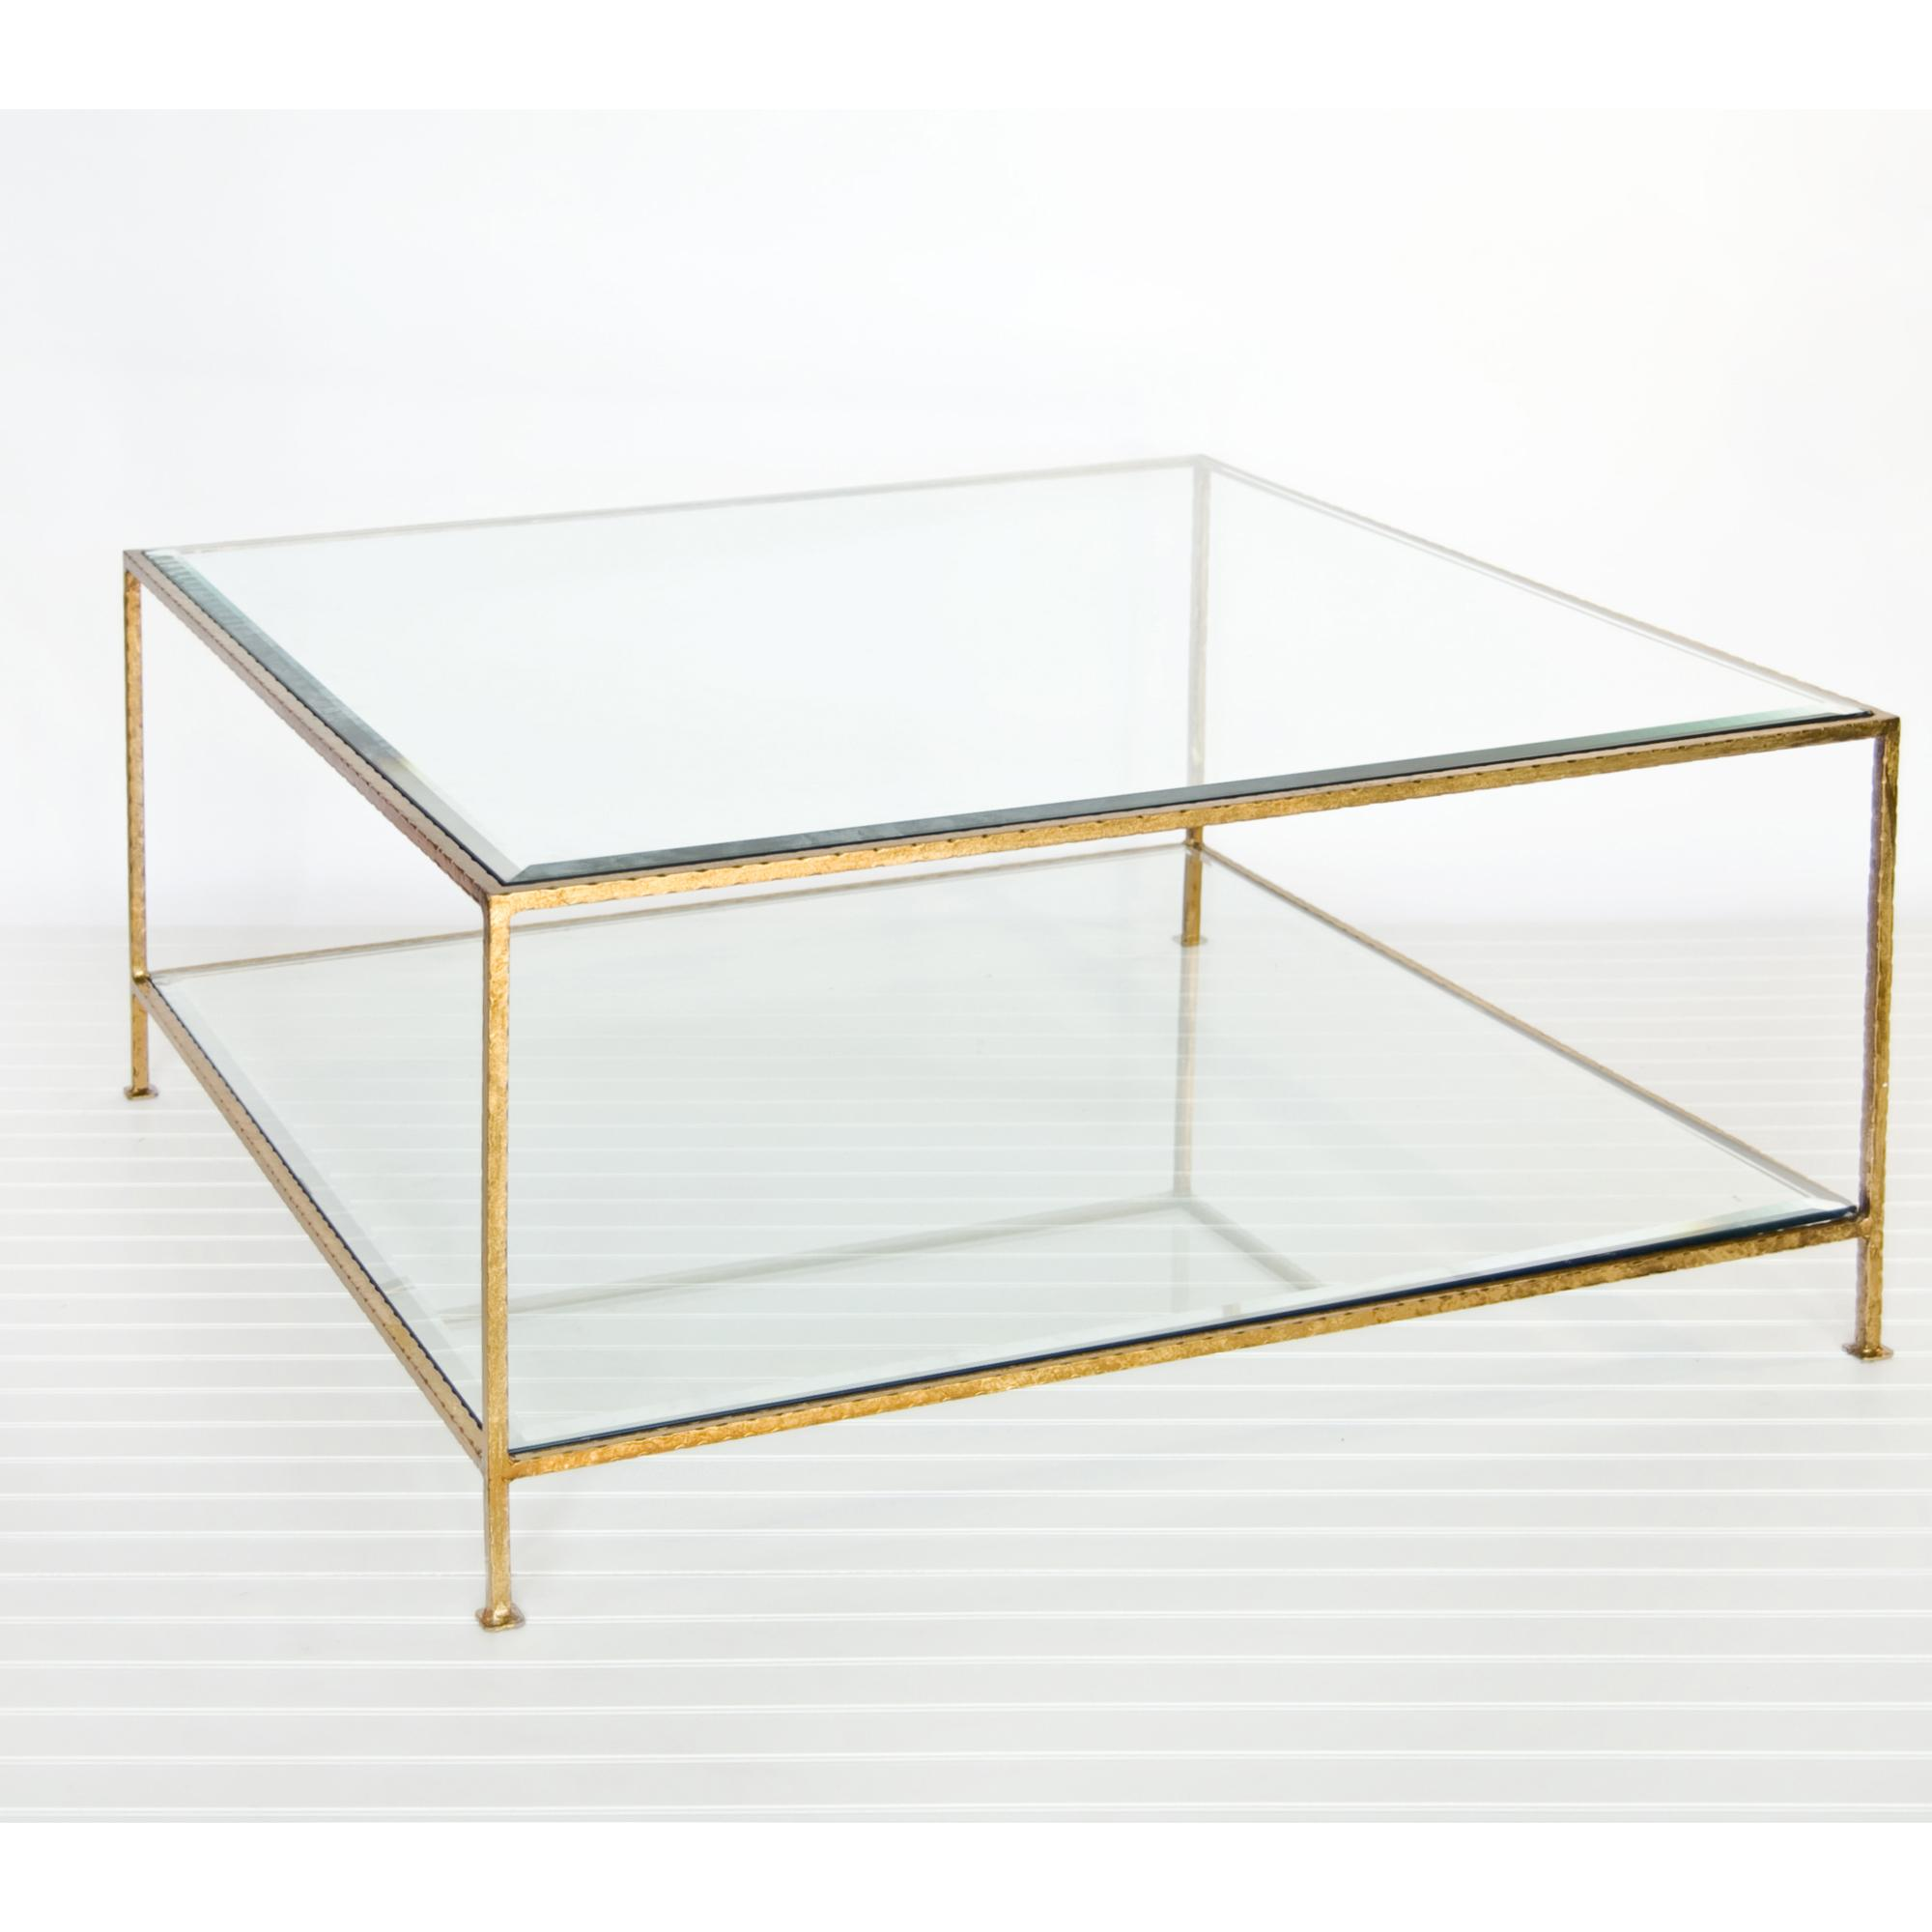 10 s Unique Gold Glass Coffee Table